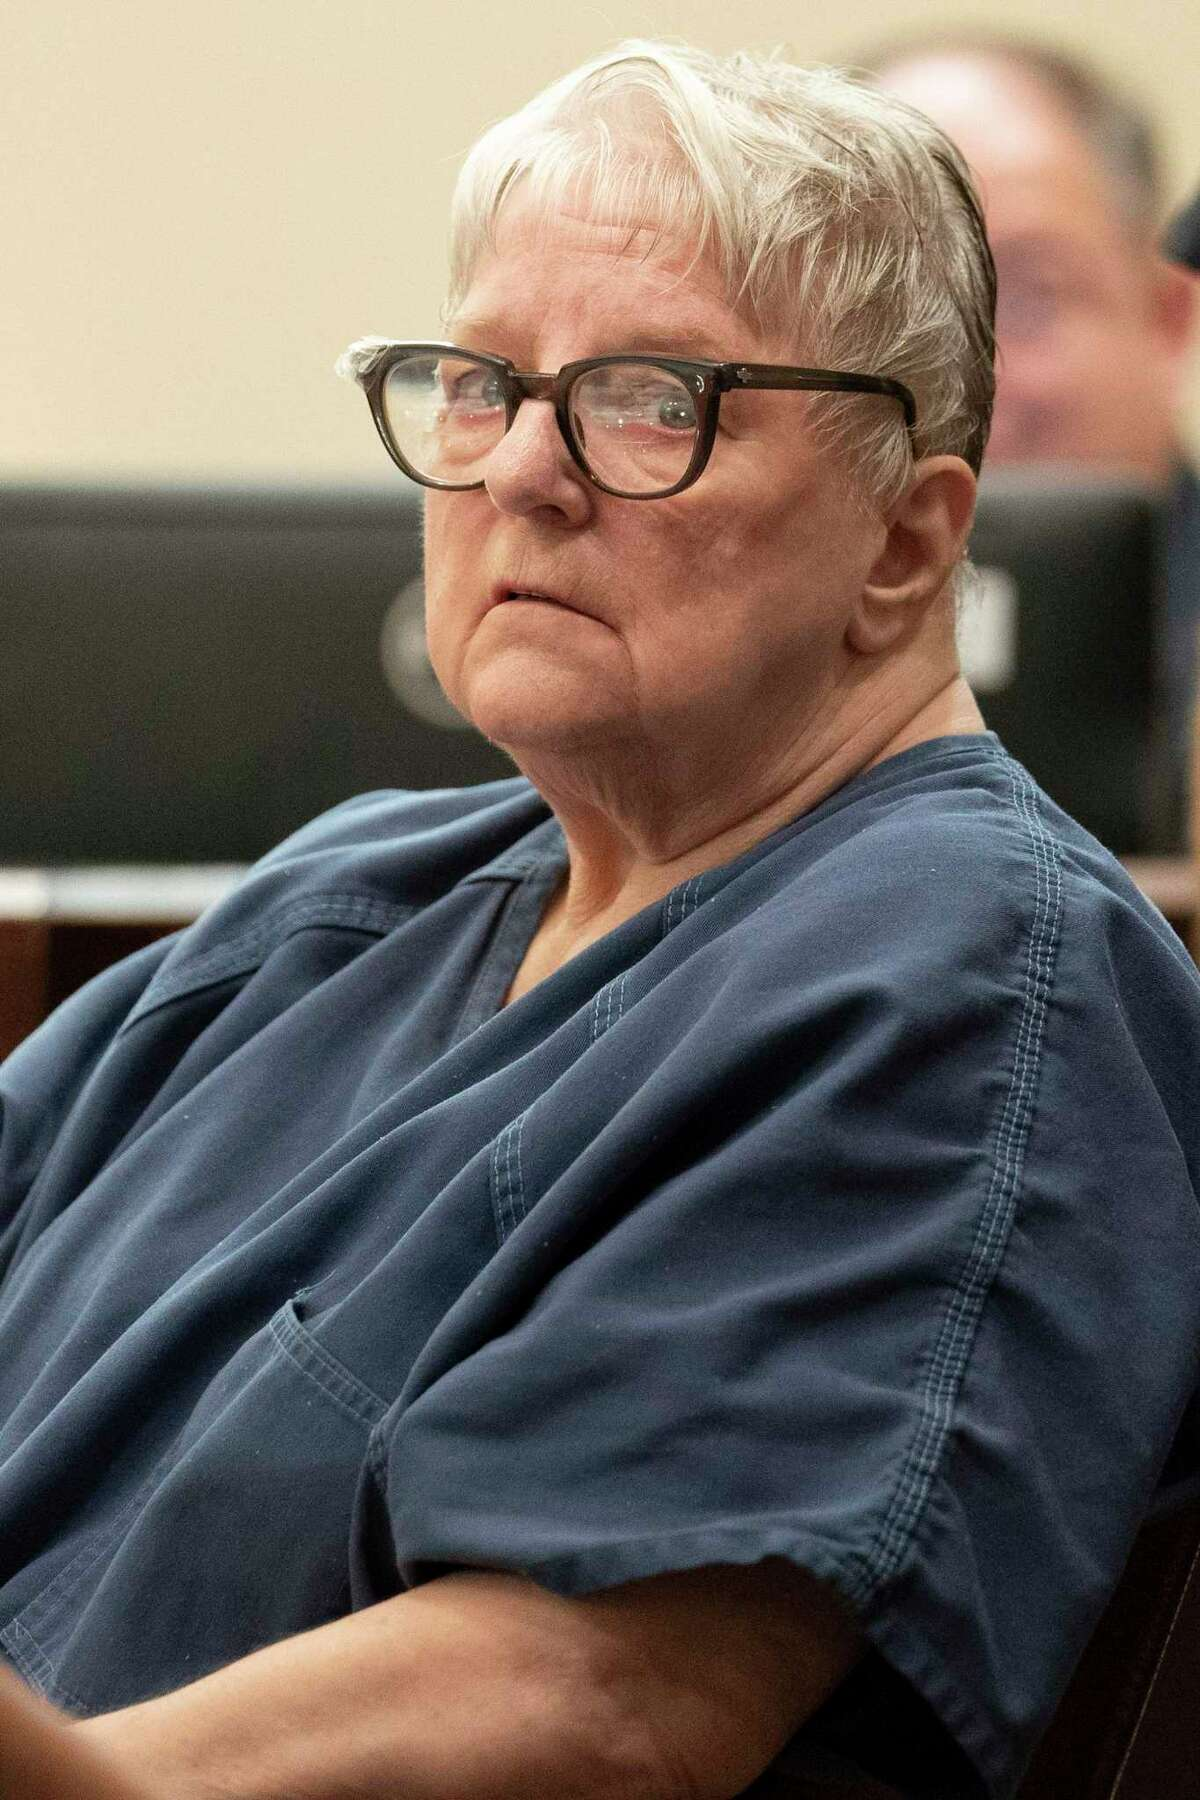 Convicted murderer Genene Jones listens during a court hearing in Bexar County about her case on May 22, 2019.